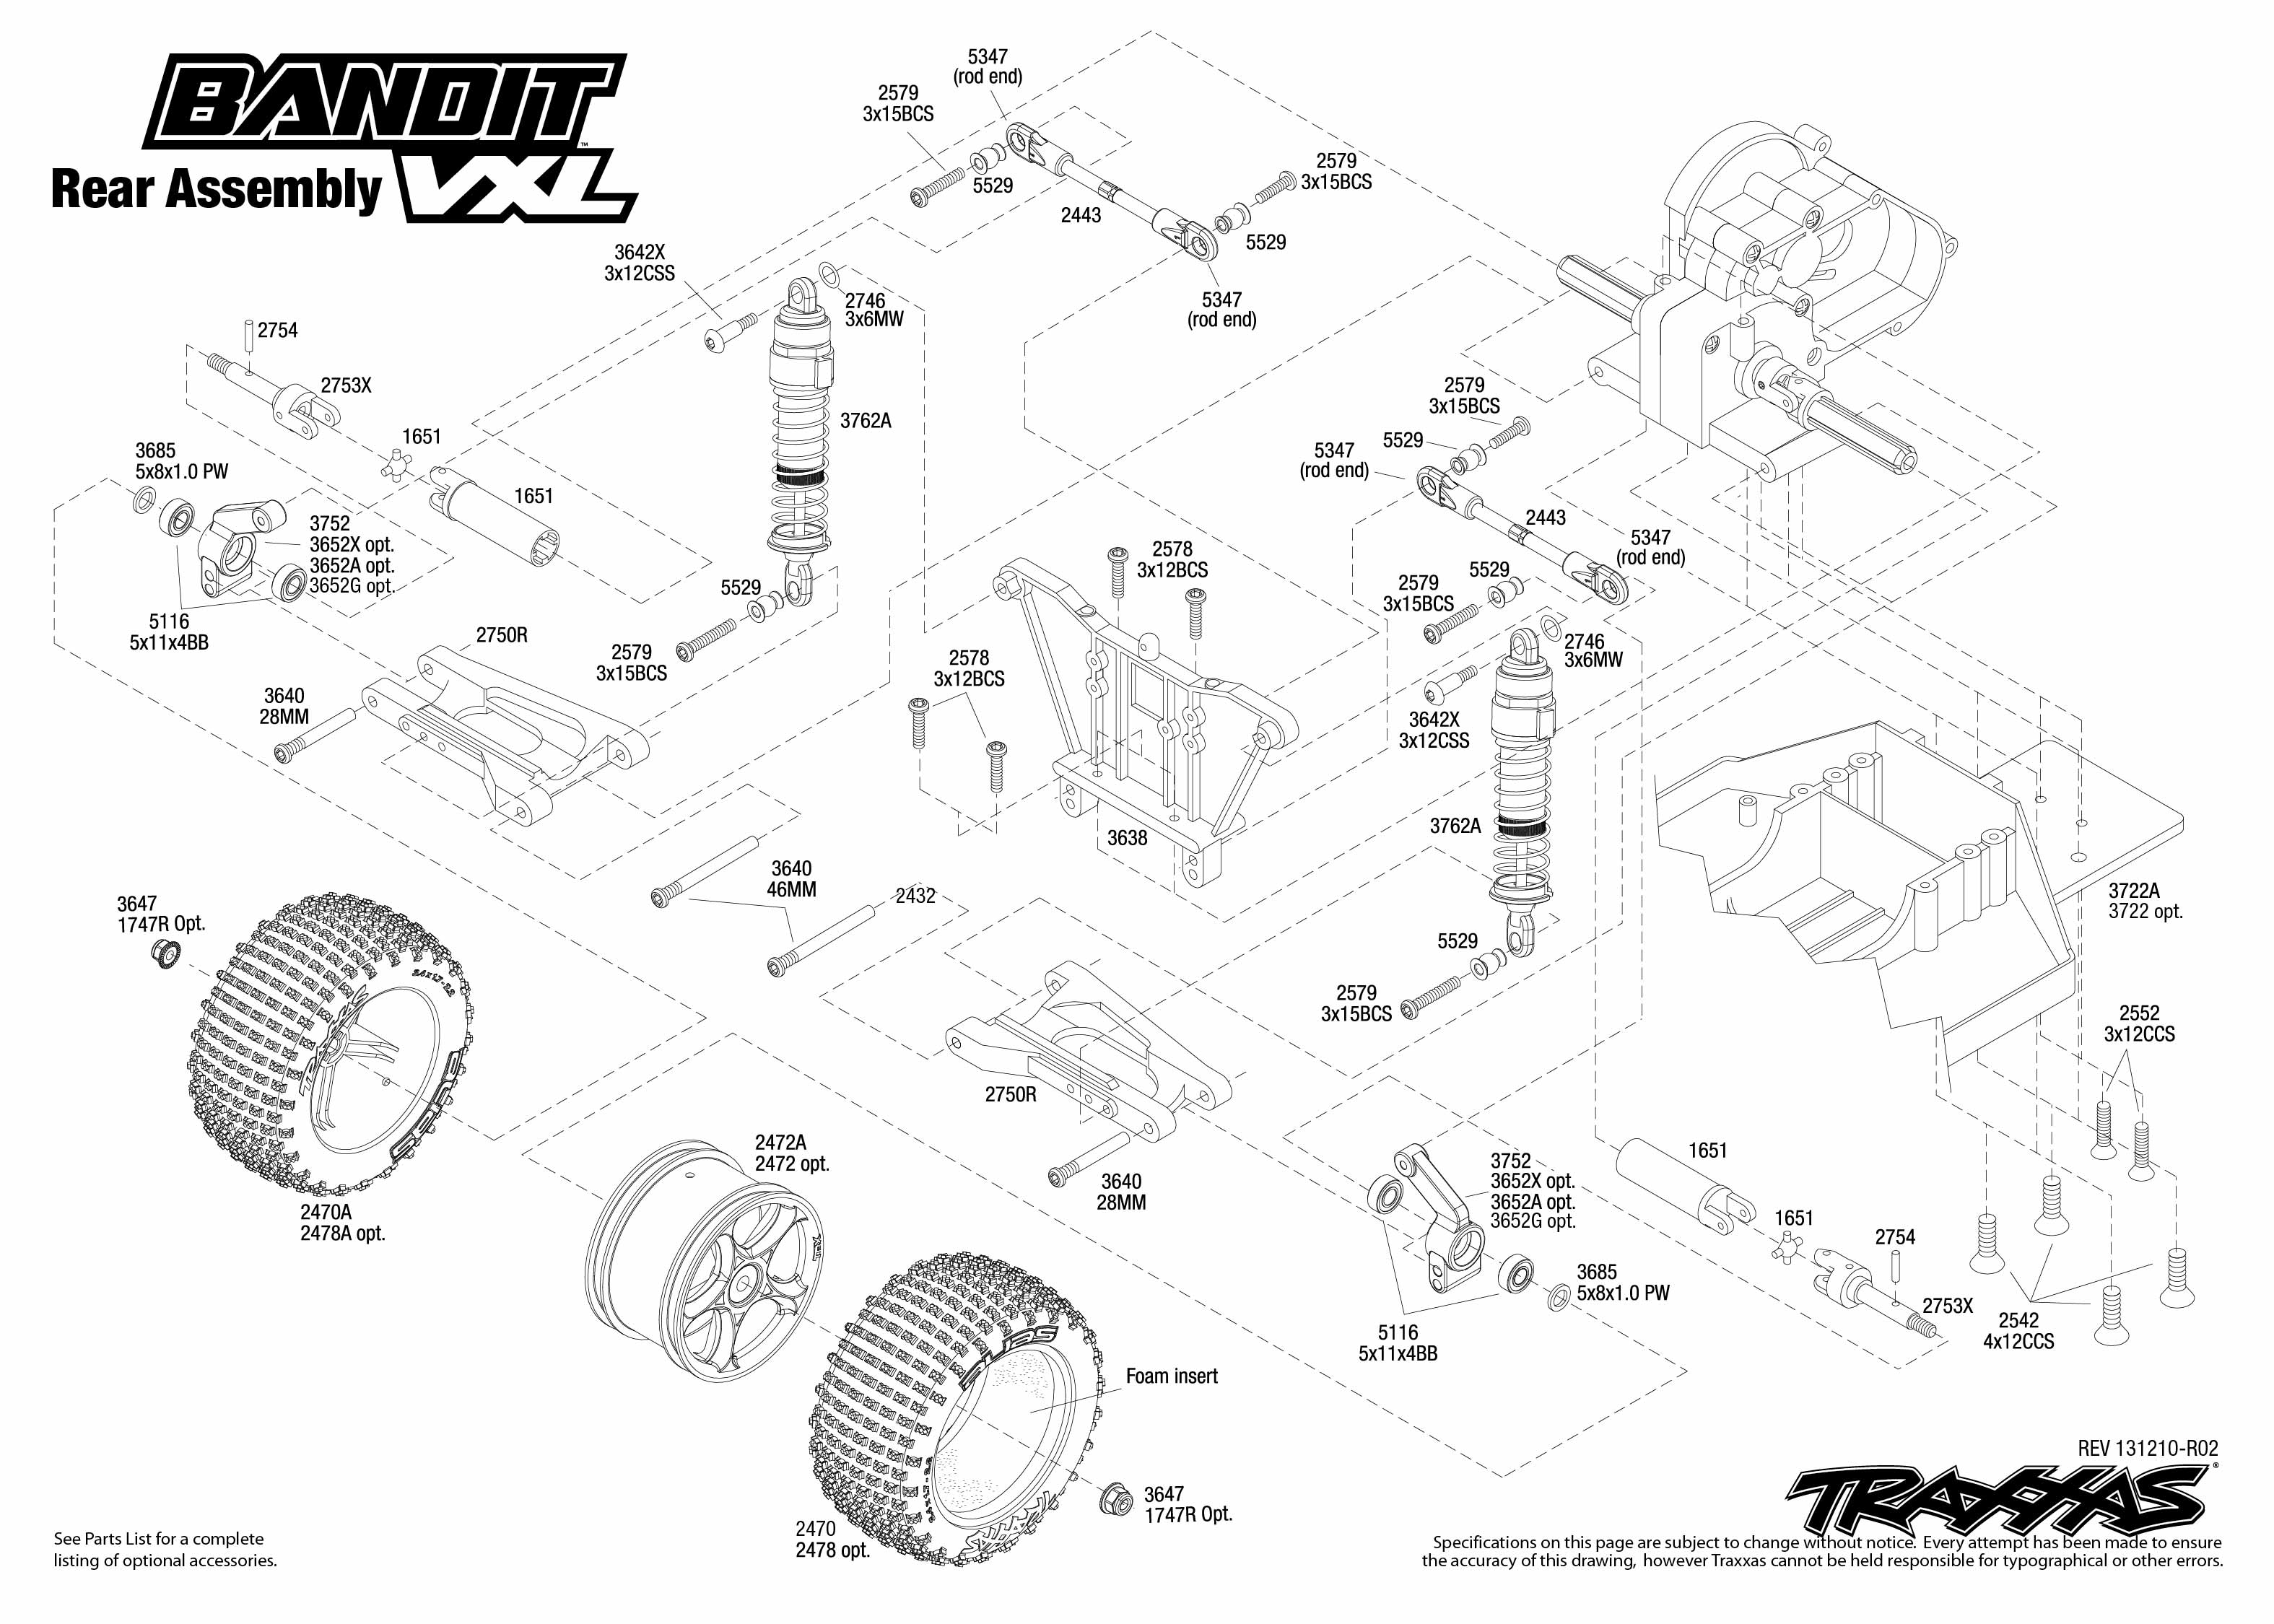 2407 rear exploded view bandit vxl traxxas rh traxxas com traxxas jato parts diagram traxxas parts diagram rustler